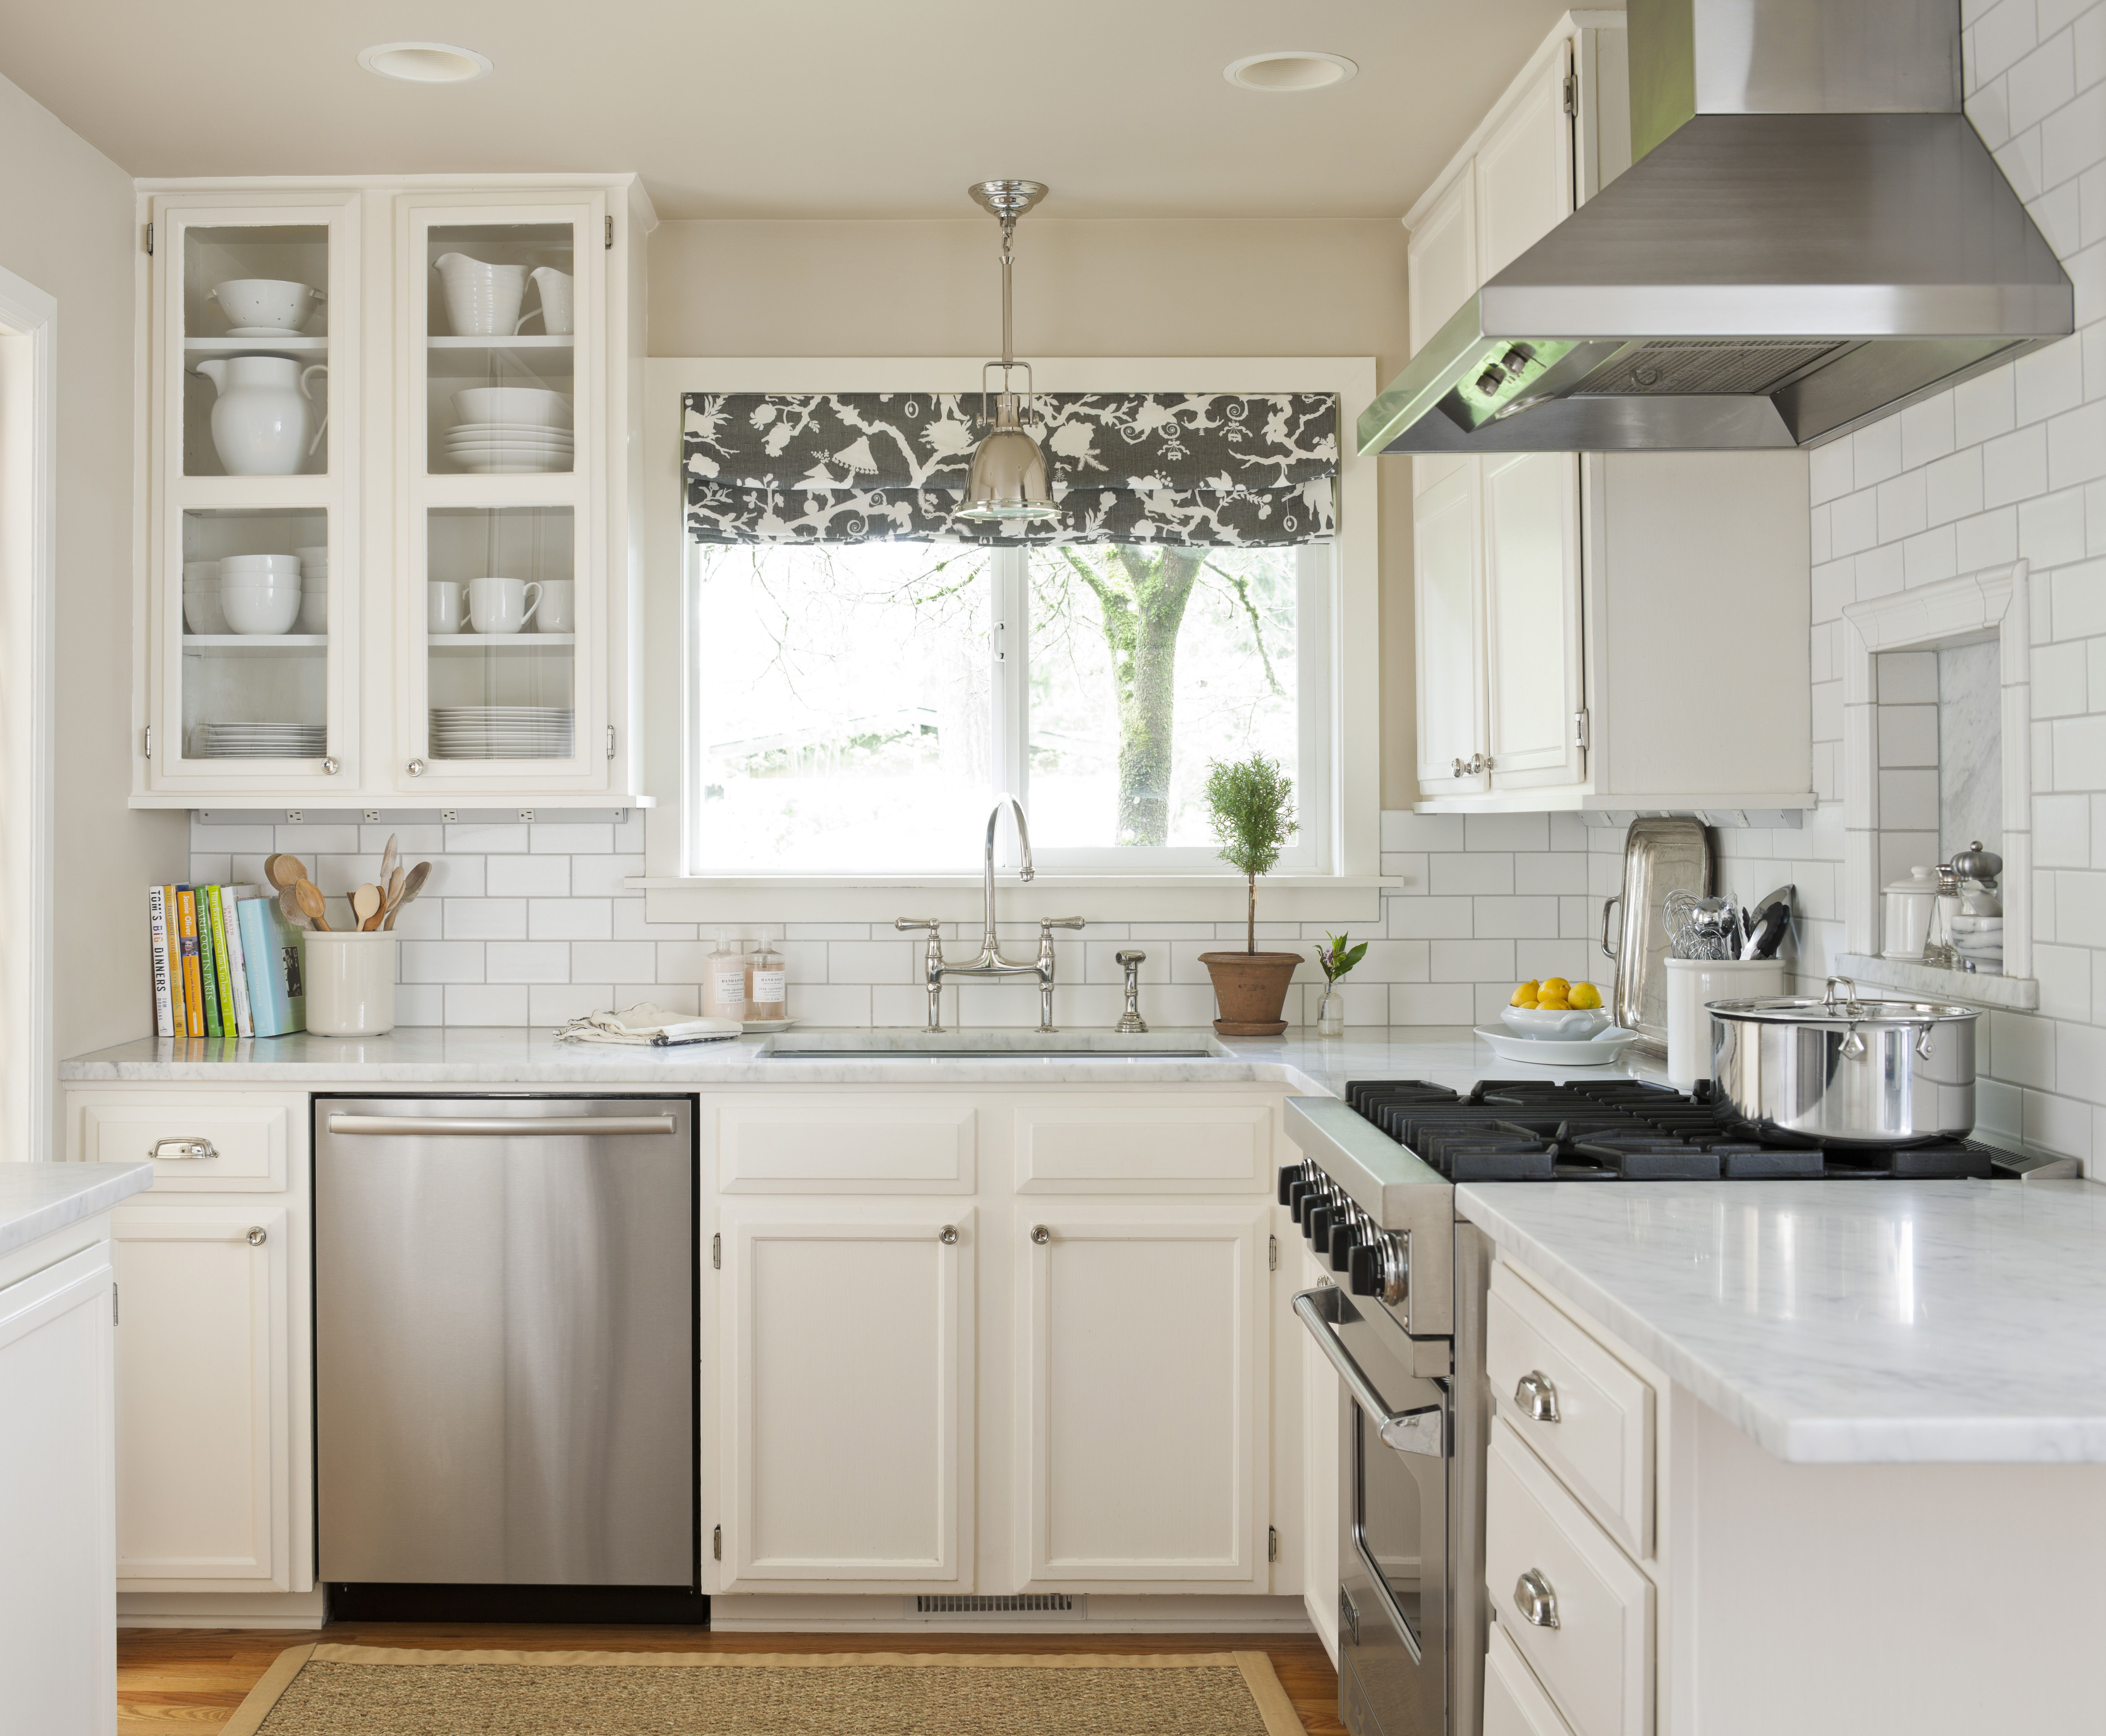 Modern The Naked Kitchen Photo - Kitchen Cabinets | Ideas ...